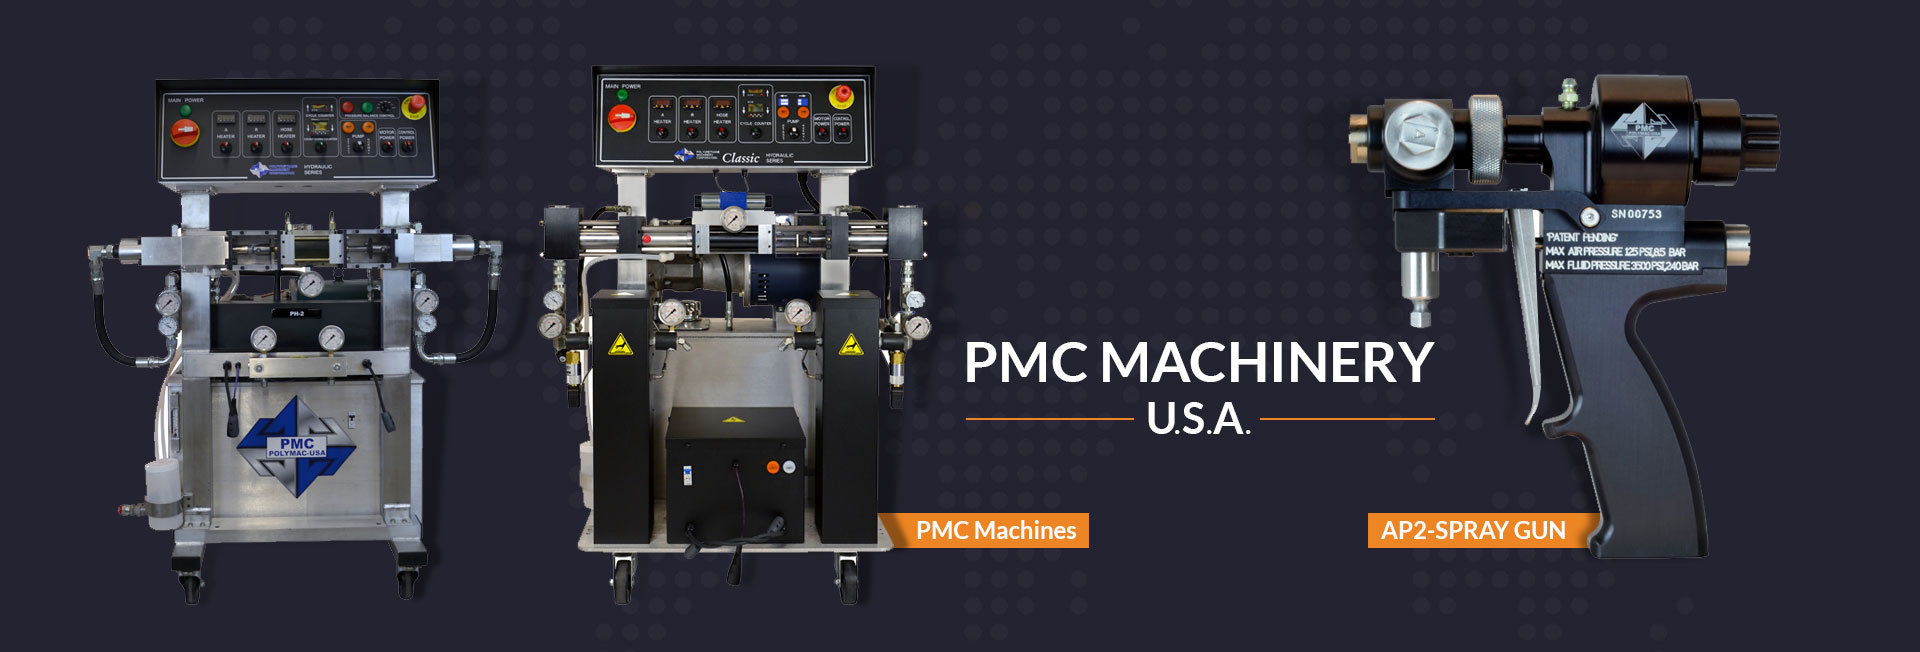 PMC Machinery